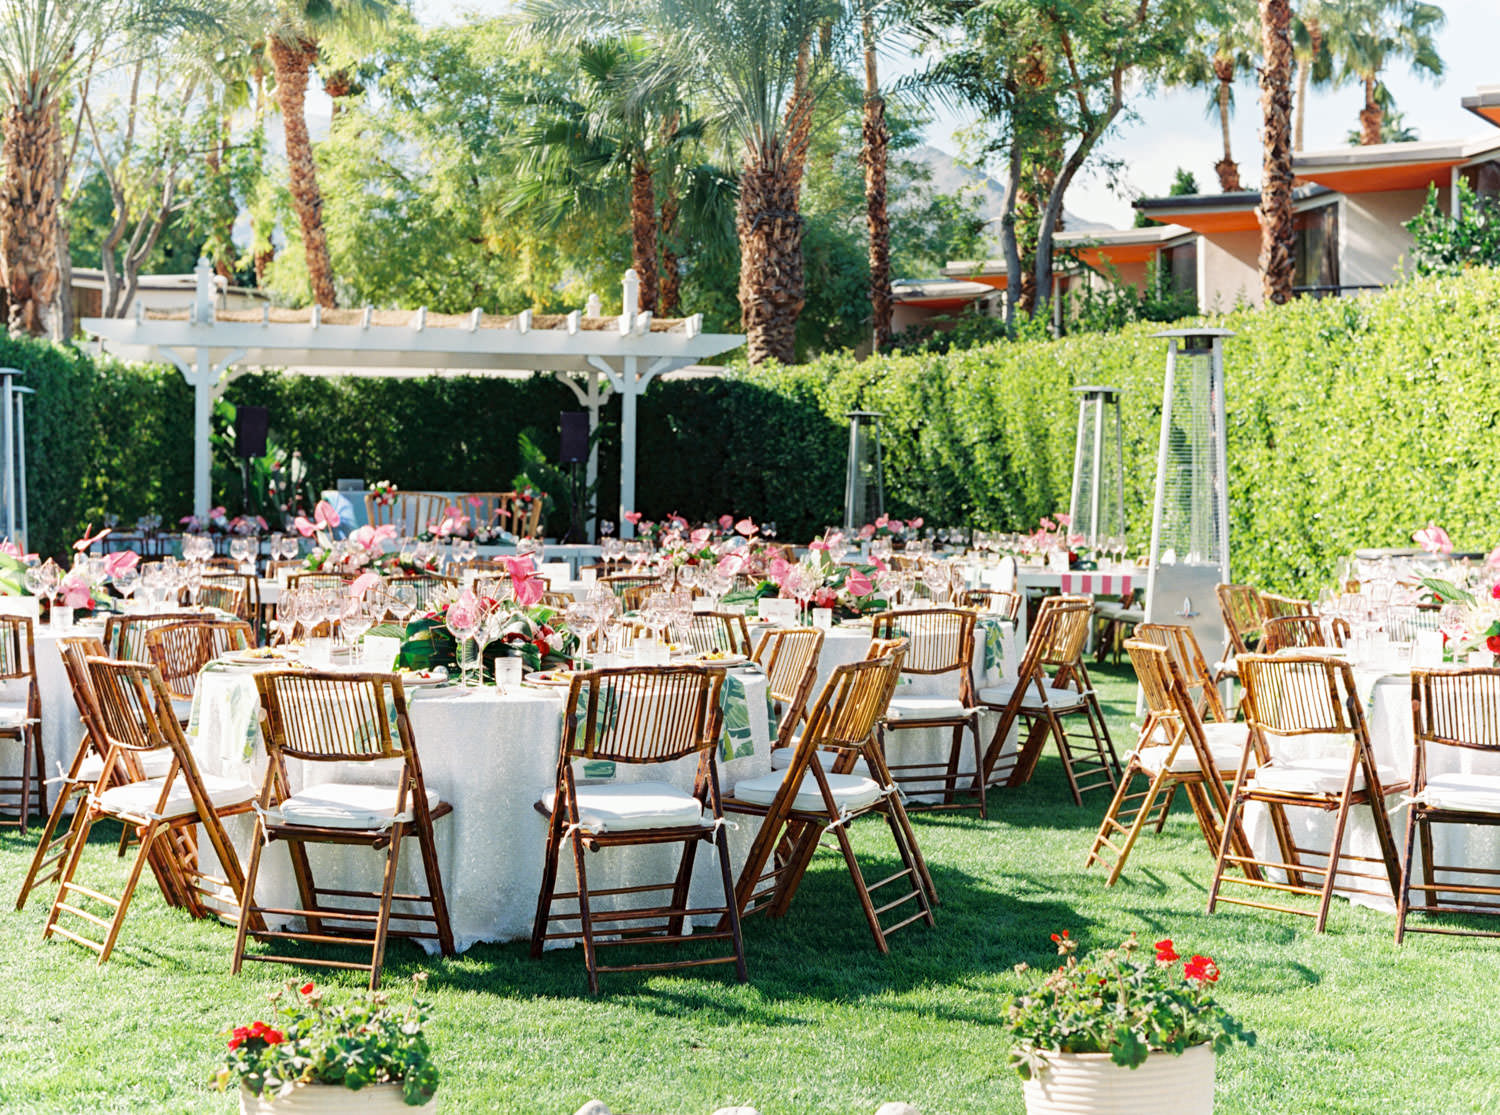 Outdoor brunch reception with round tables covered in sequin linens, bamboo folding chairs with white cushions, and tropical centerpieces with palm leaves, pink anthurium, and proteas. Riviera Palm Springs Wedding by Cavin Elizabeth Photography